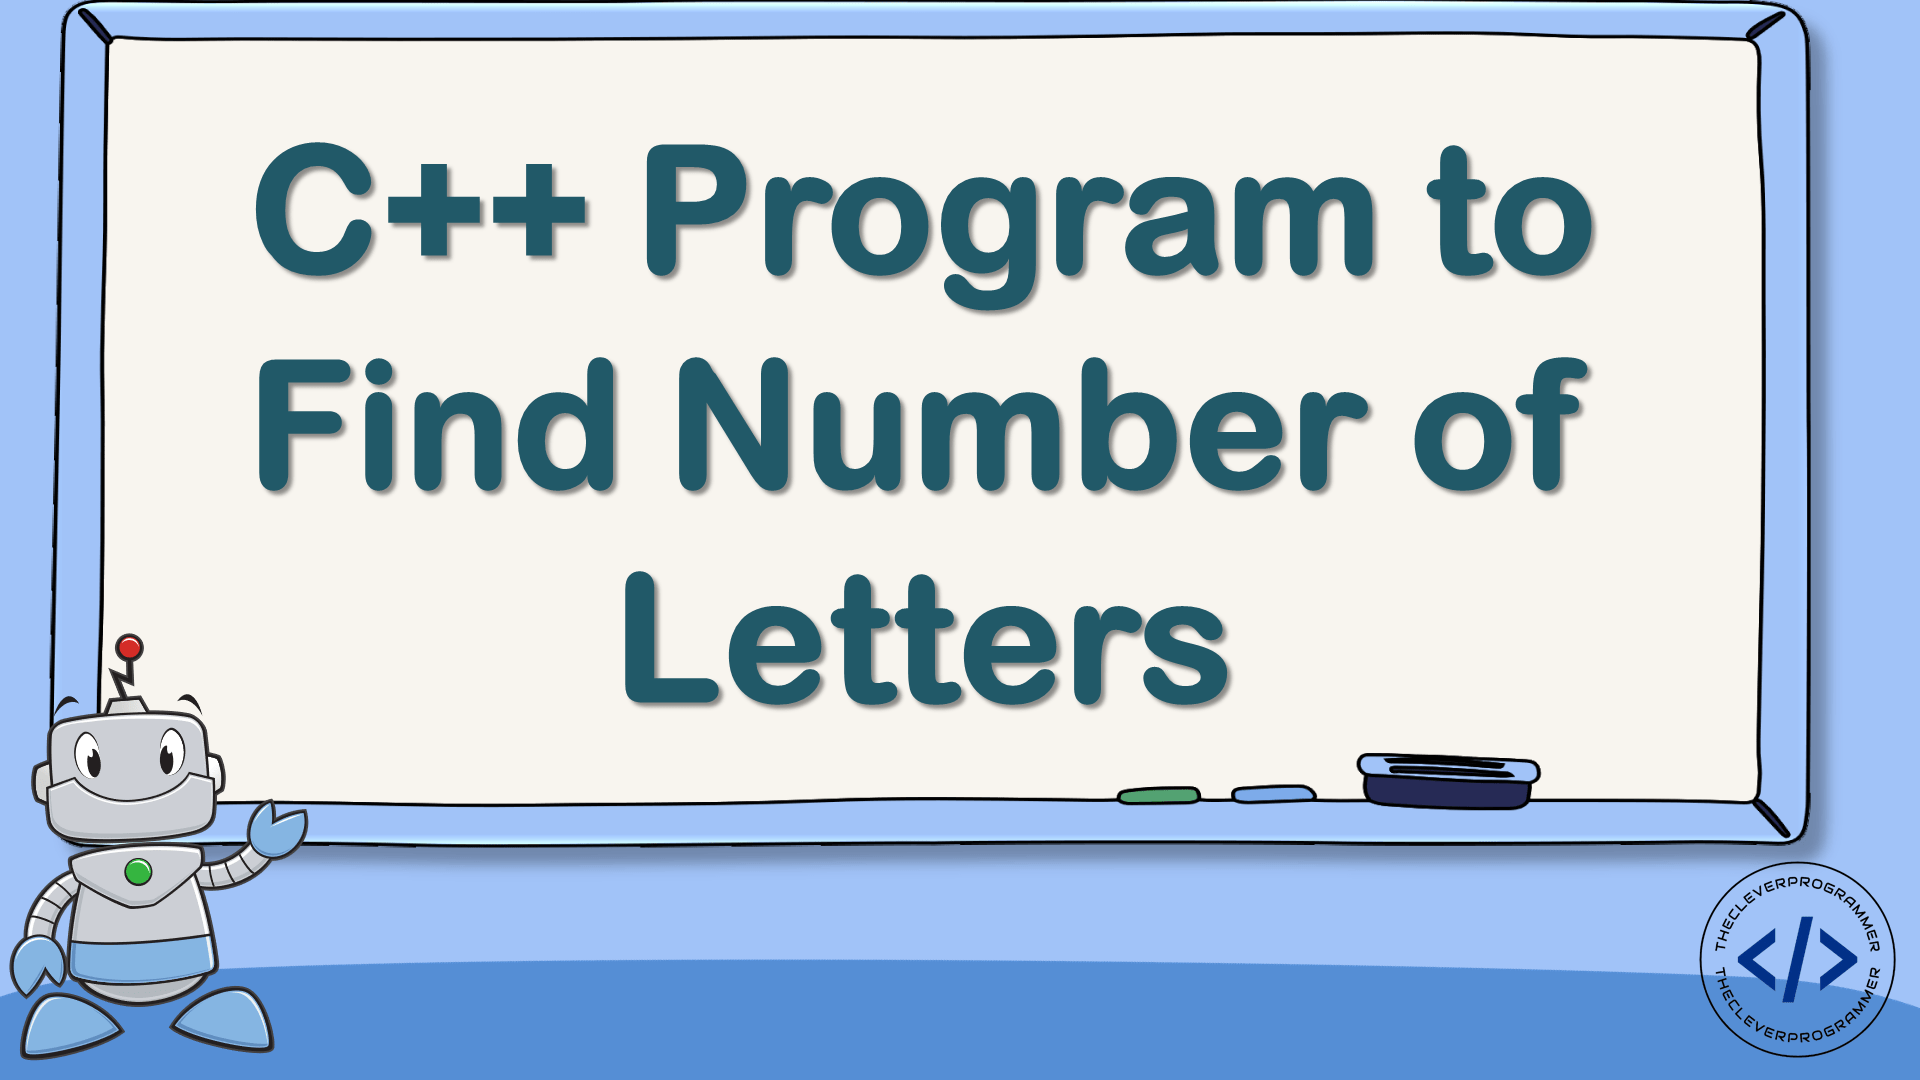 C++ Program to Find Number of Letters